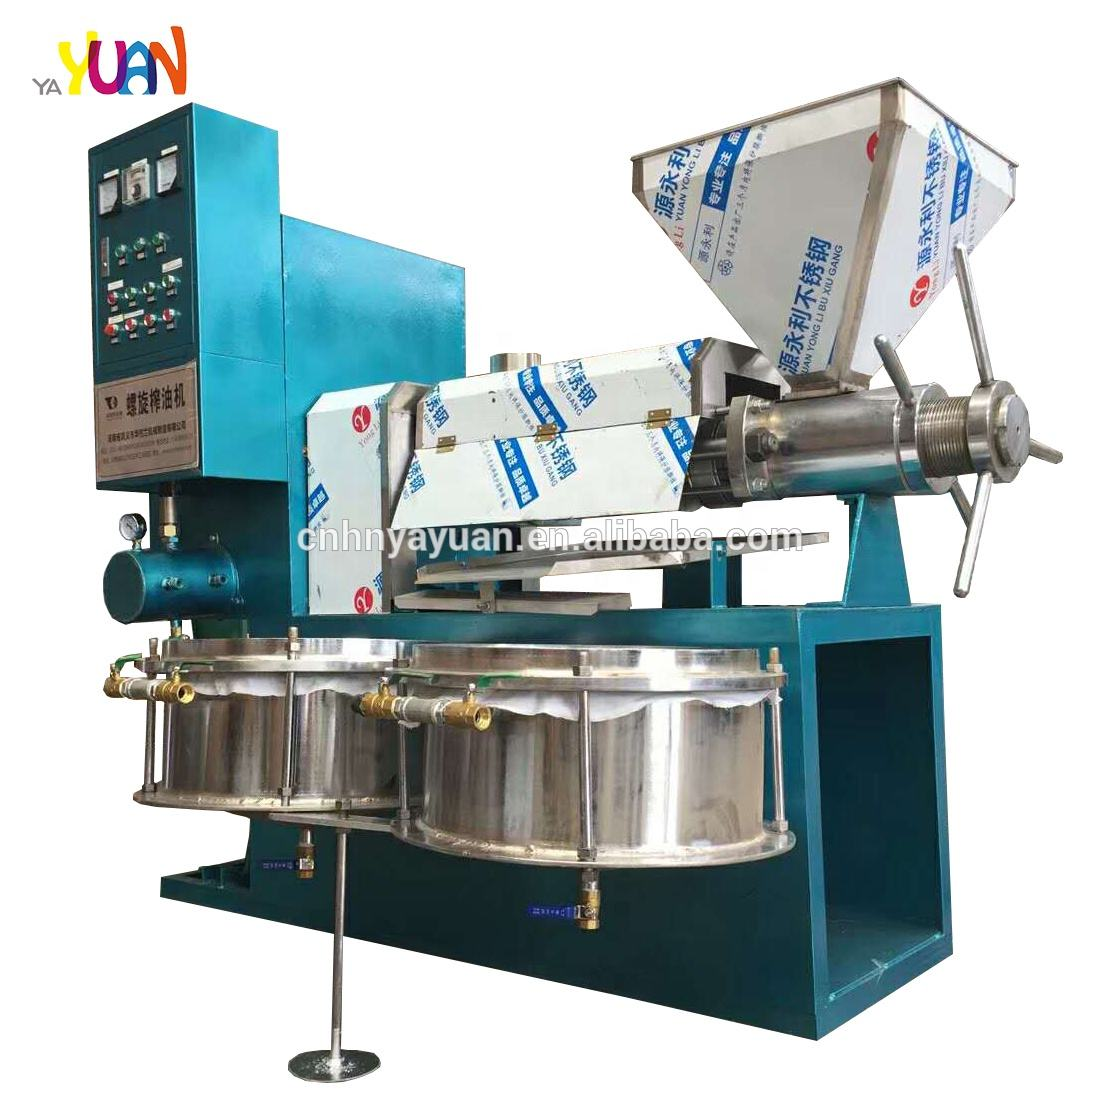 Mustard oil extraction process machine corn oil extraction machine 6YL-125